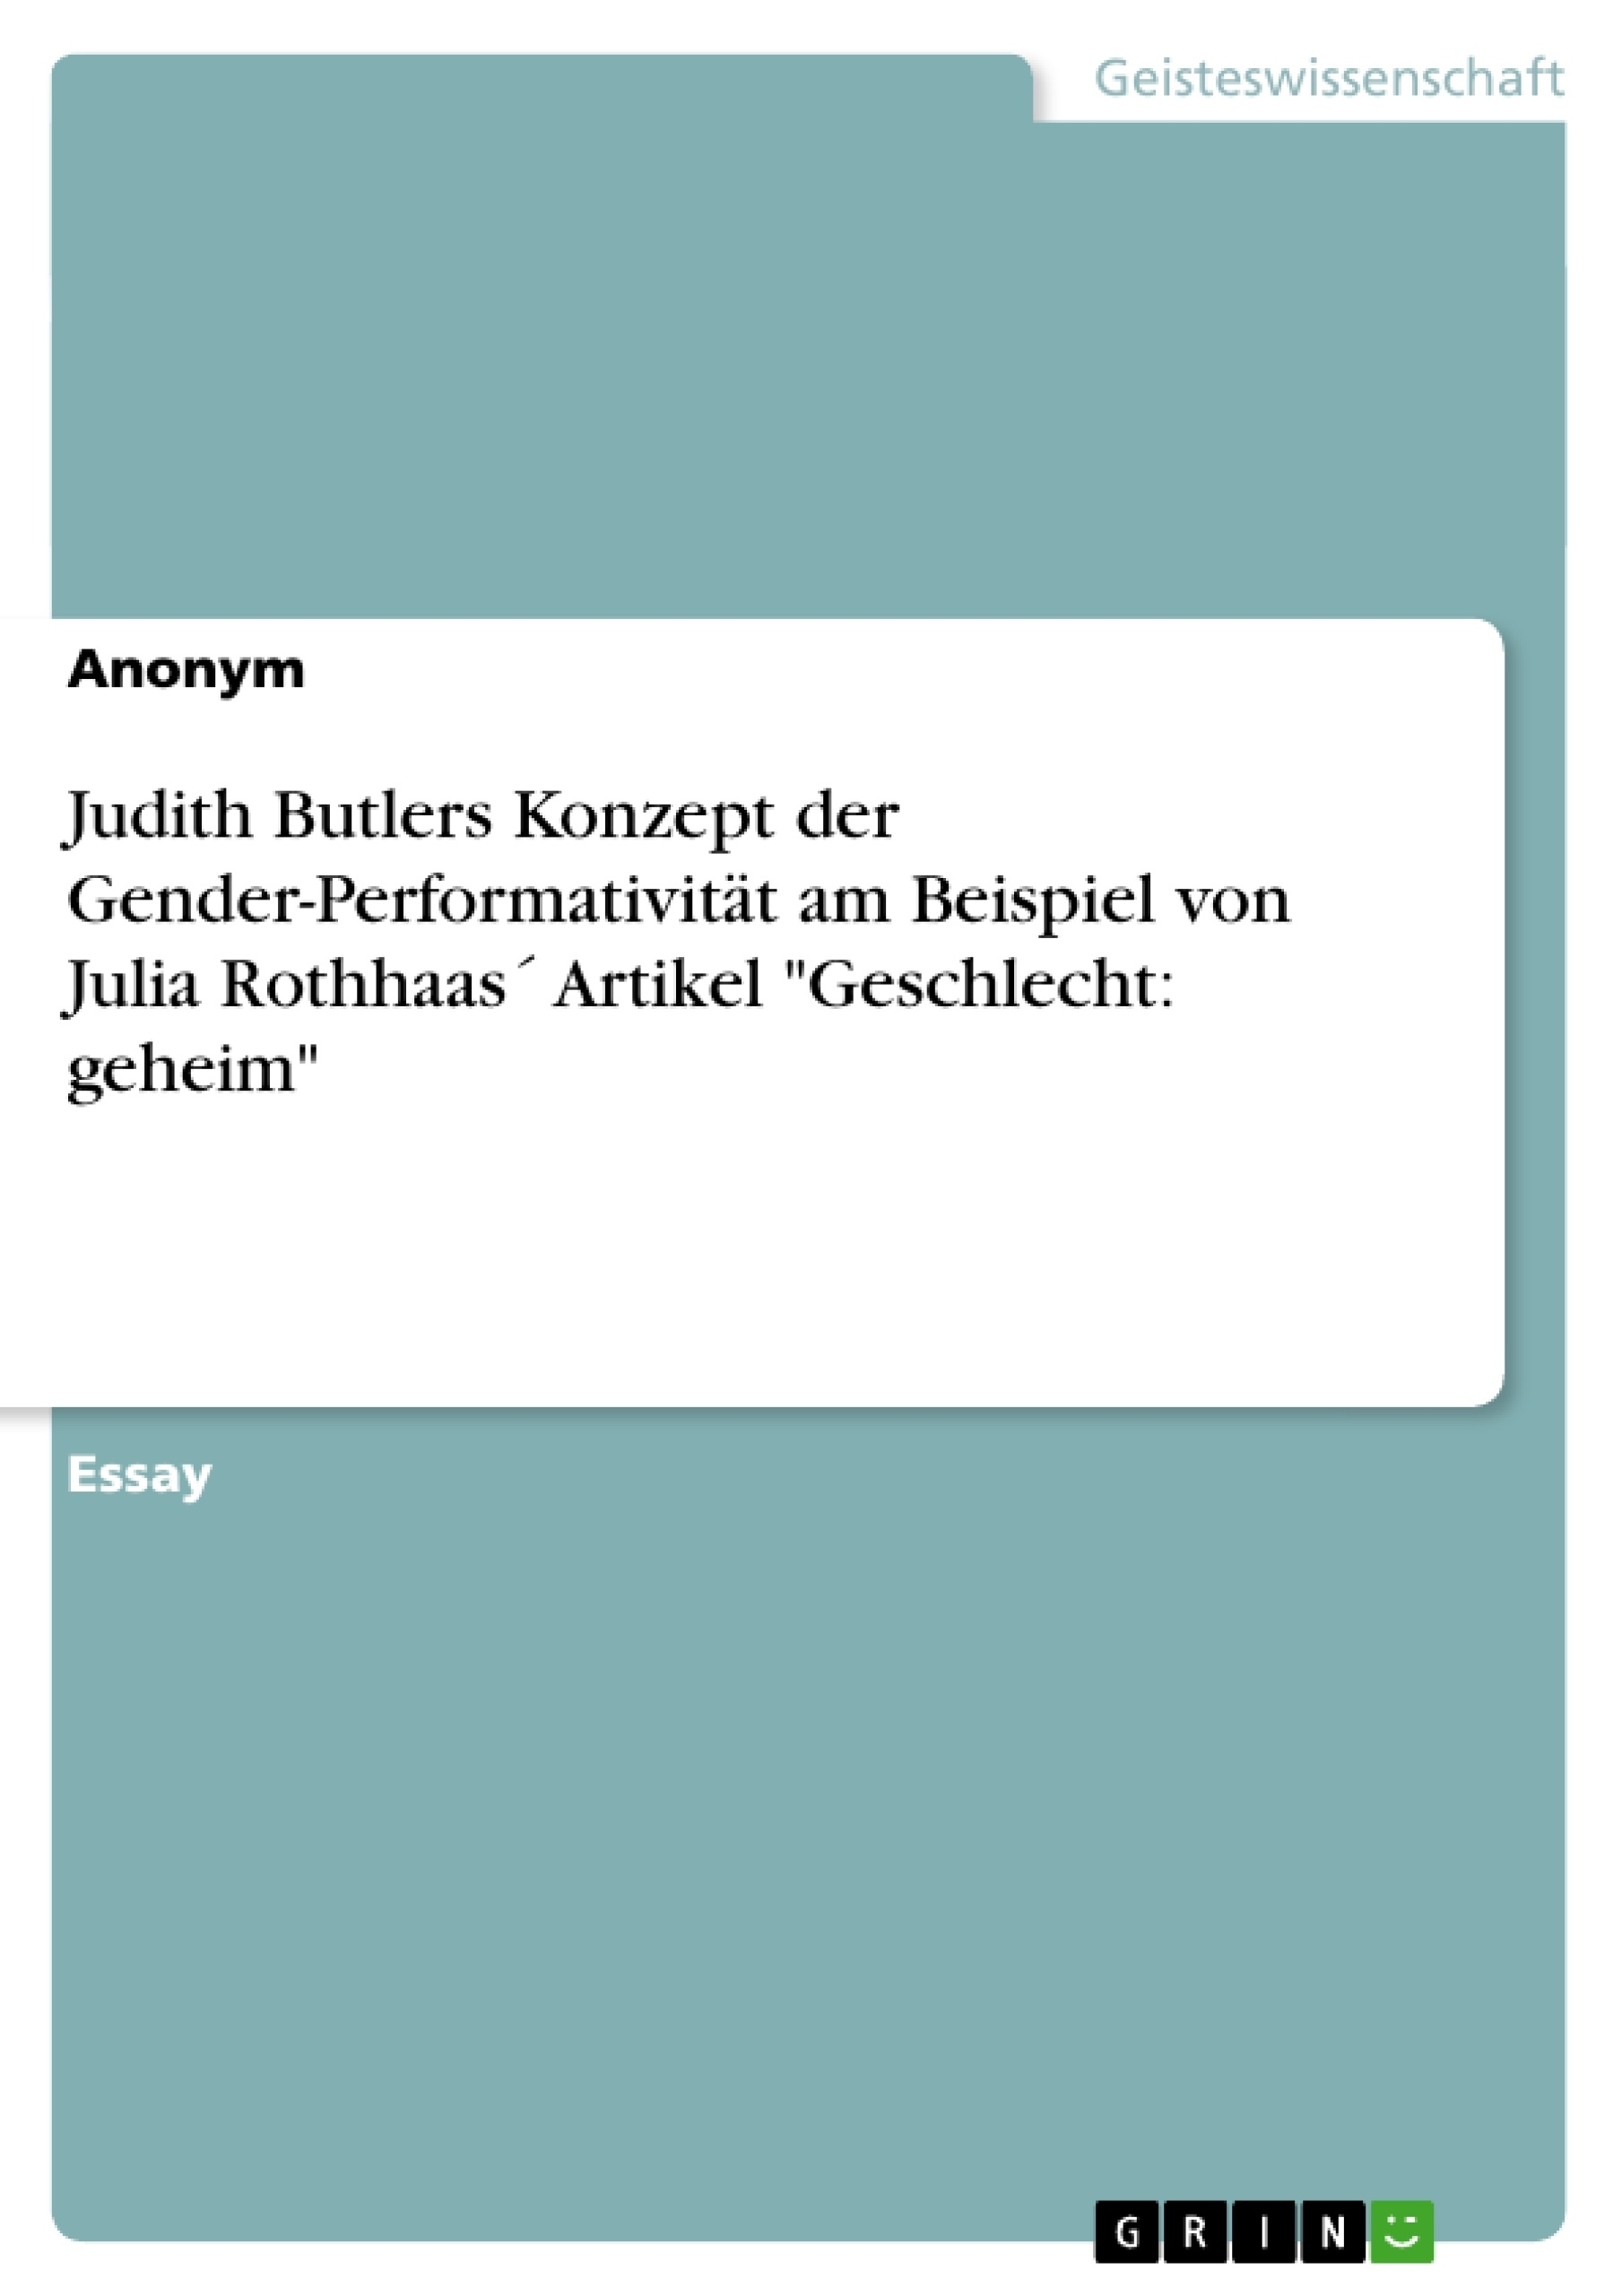 judith butlers trouble in gender essay Zoe dixon 11 15 2014 womst, paper 2 gender trouble response, judith butler butler sees gender as primatily a performance and while there is some truth to.